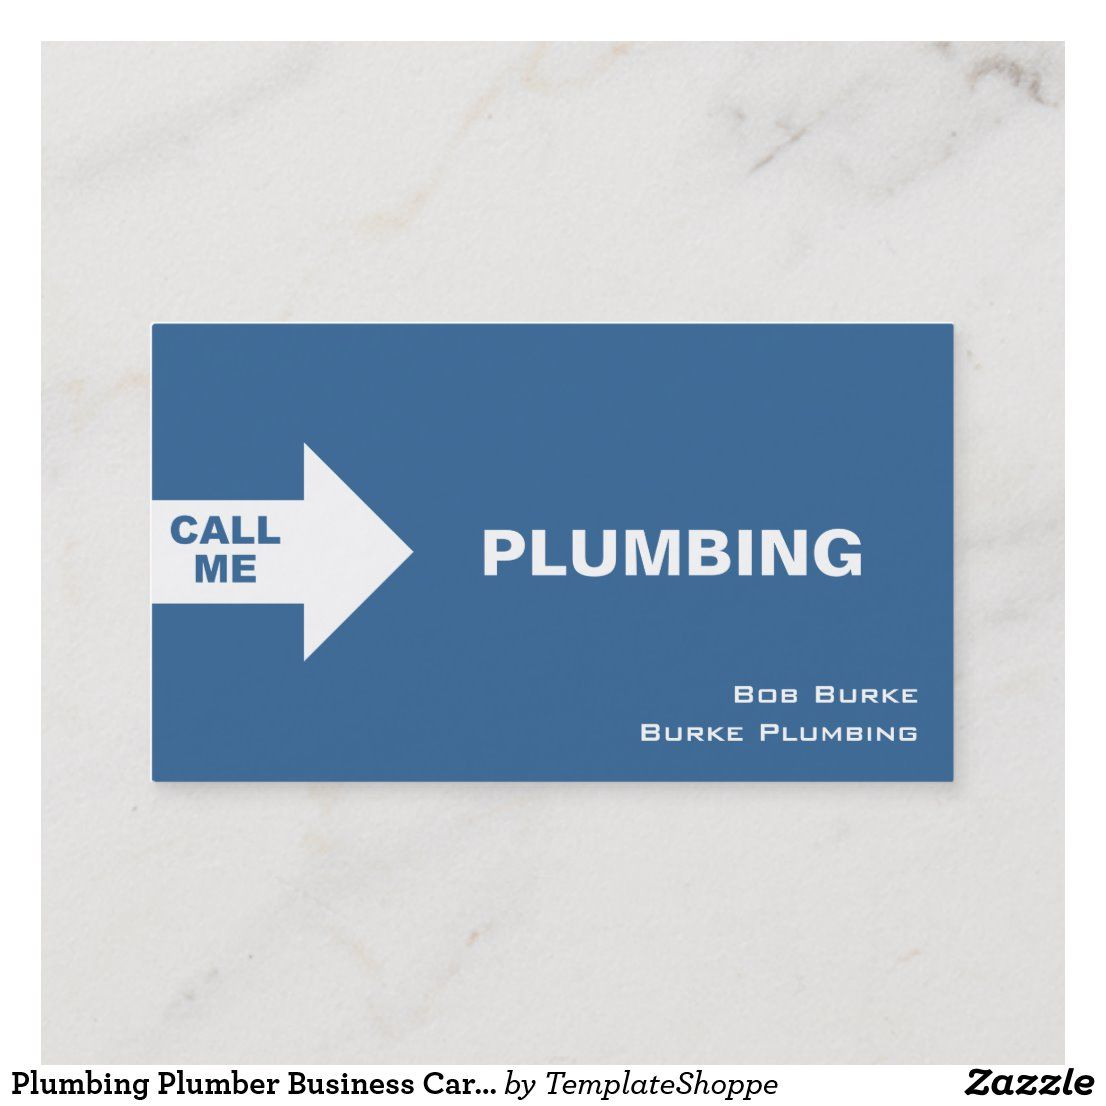 Plumbing Plumber Business Cards Zazzle Com In 2020 Plumber Plumbing Contractor Plumbing